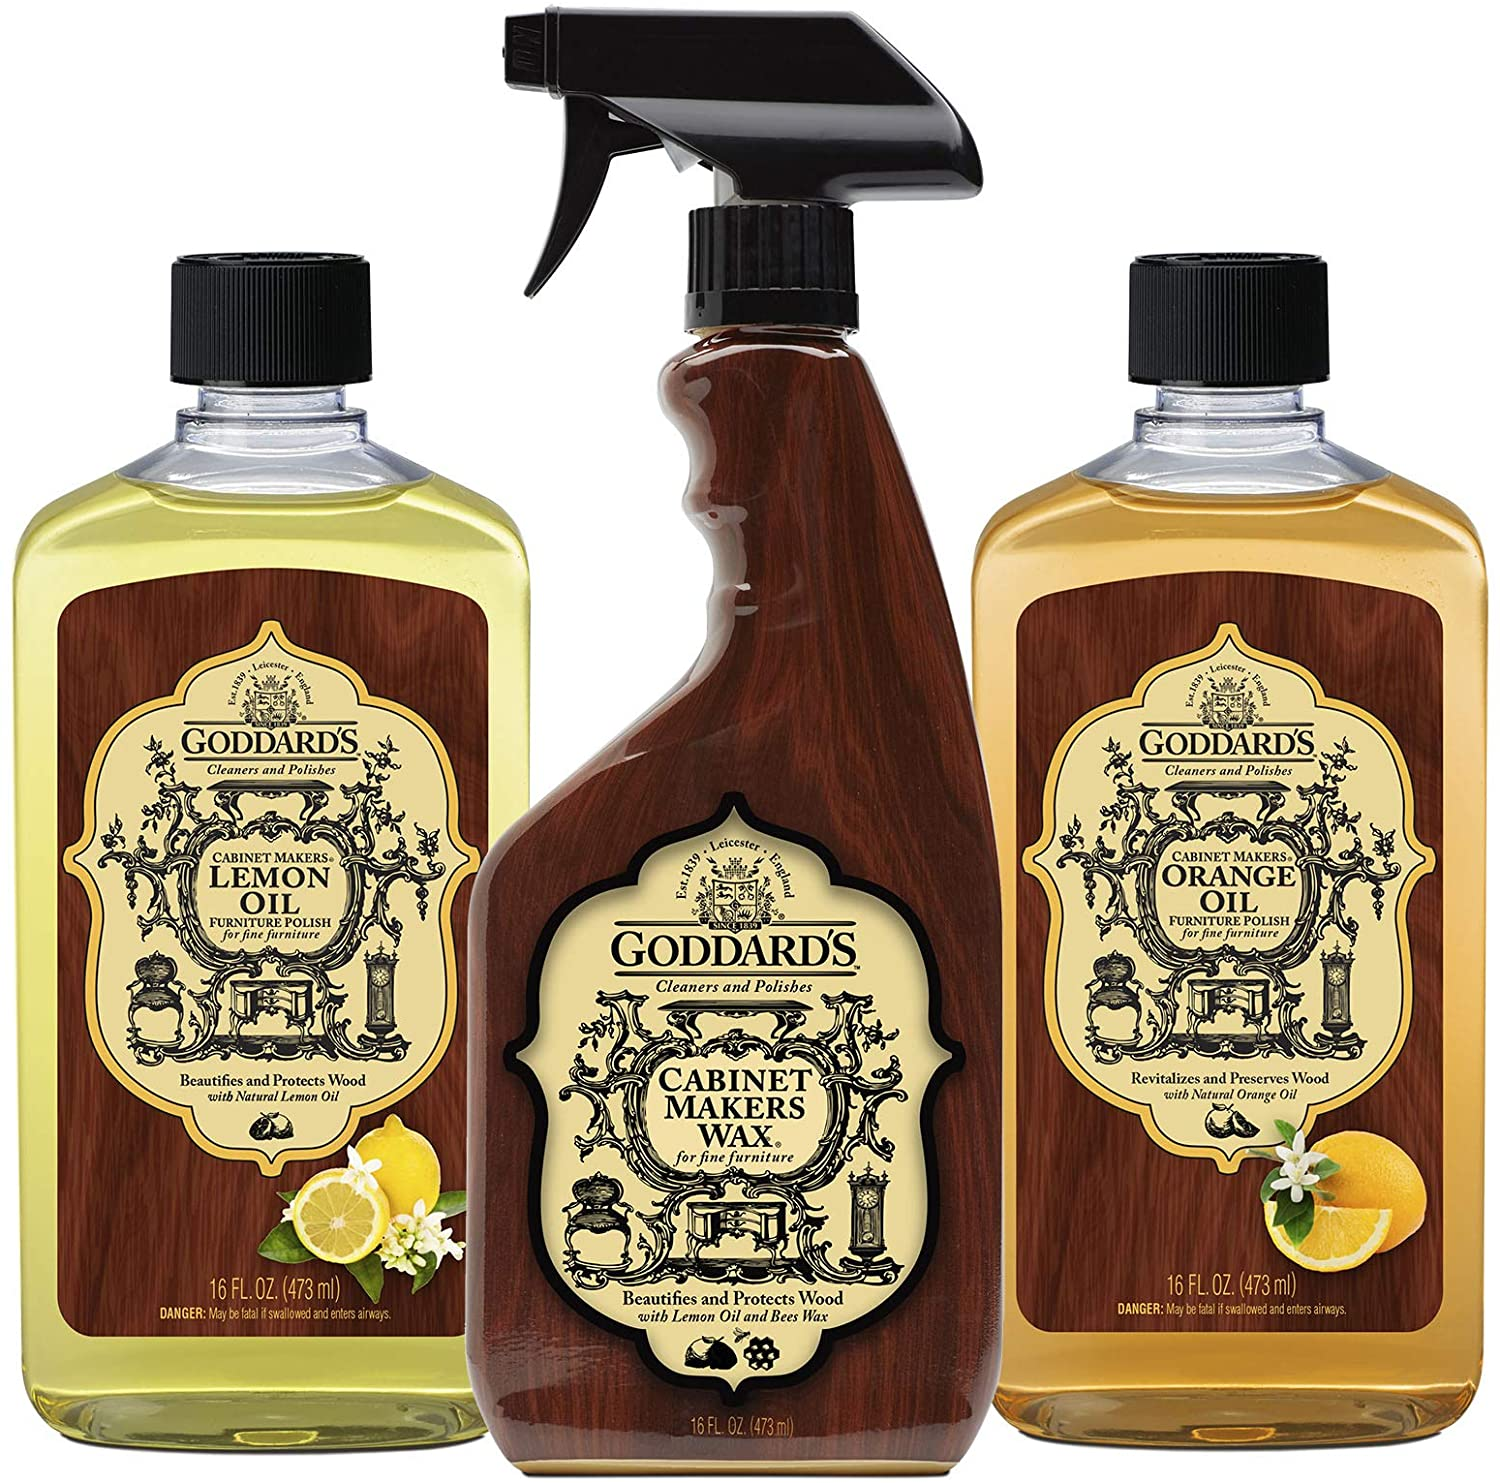 Goddard's Wood Cleaners: Includes 1 Cabinet Makers Wax Spray, 1 Cabinet Makers Lemon Oil, 1 Cabinet Makers Orange Oil